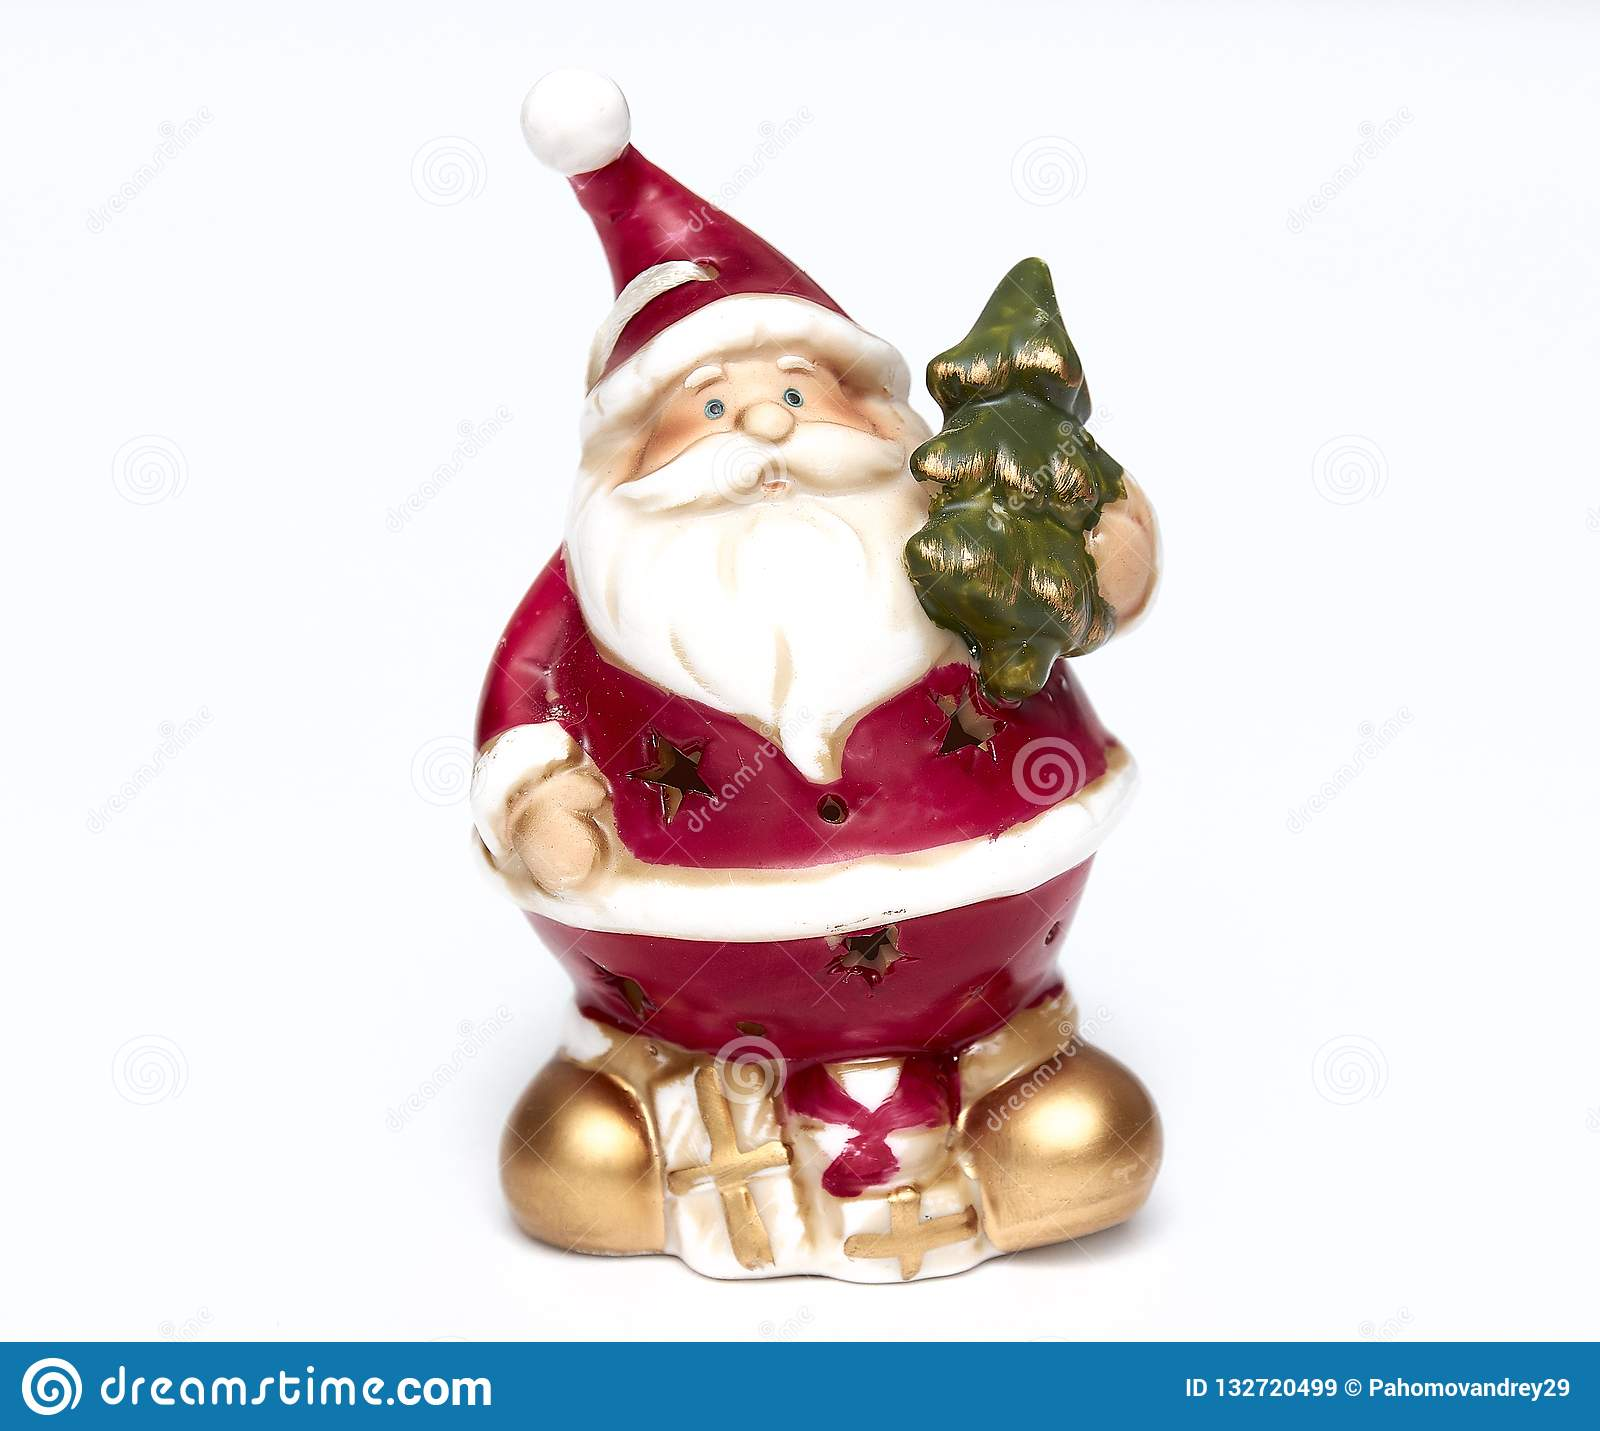 Cute Santa Claus doll with a Christmas tree in his hand. Adorable Santa Claus decorative toy, insulator on a white background.